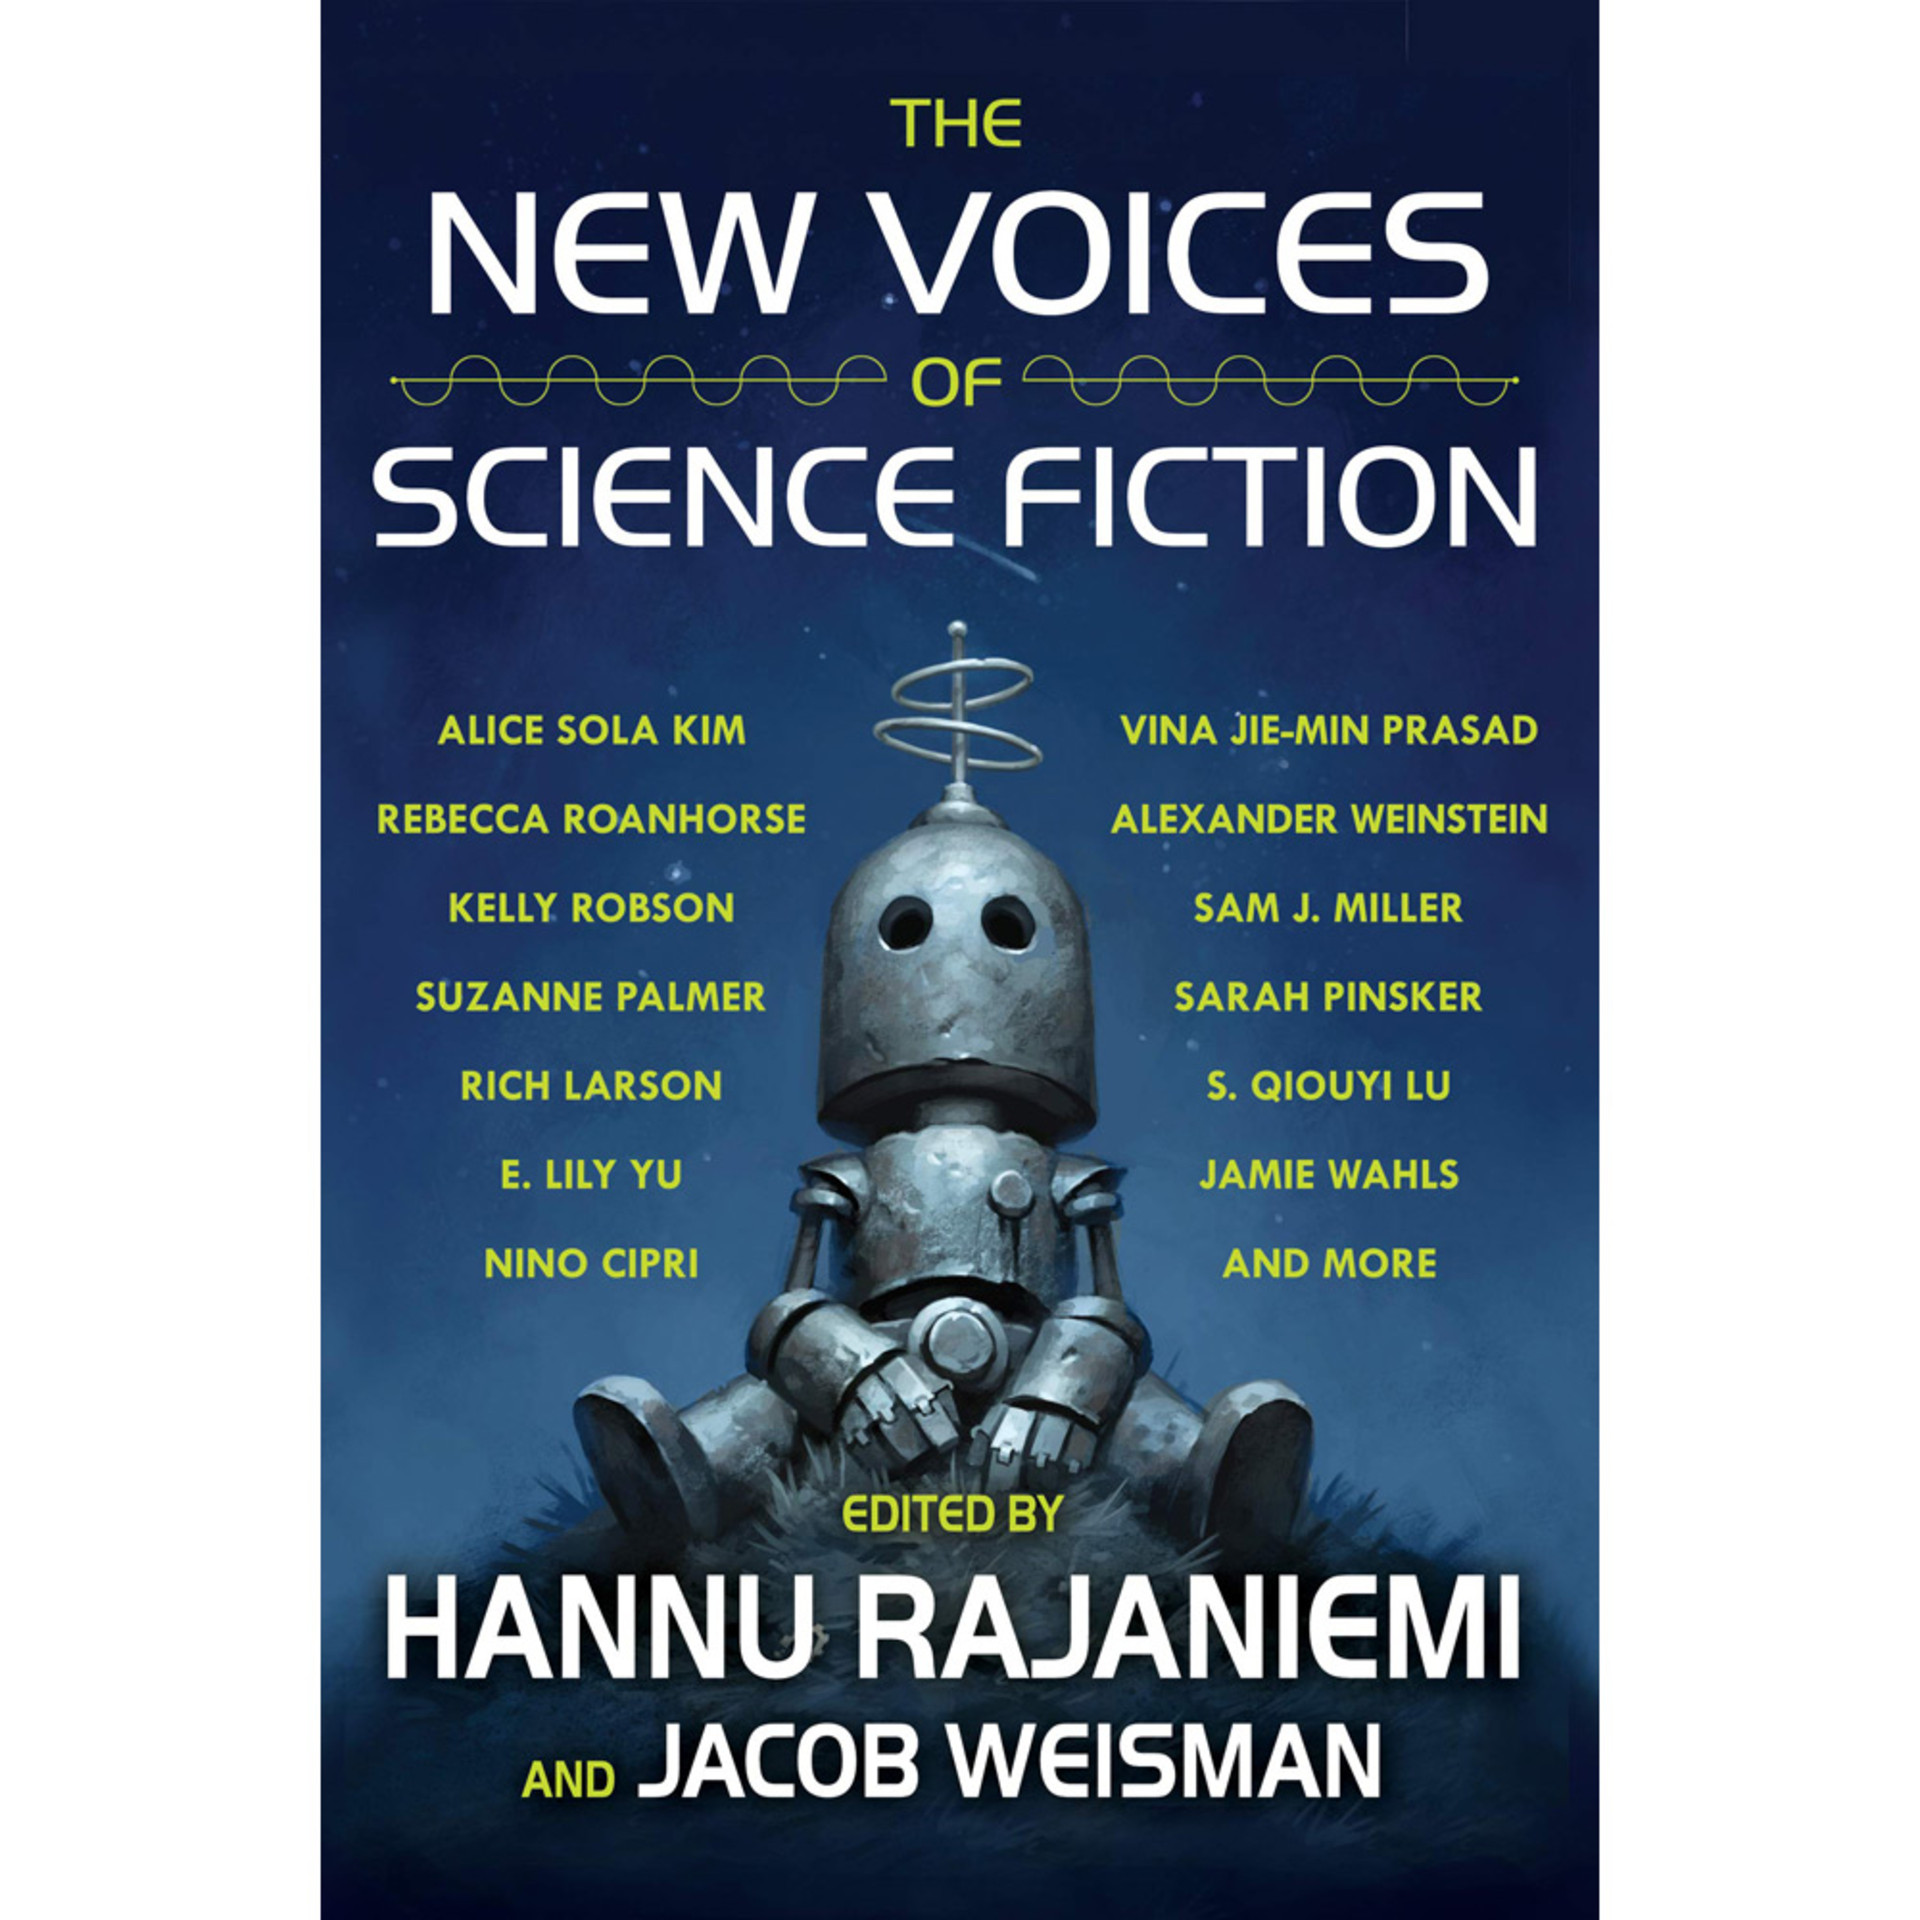 The New Voices of Science Fiction by Hannu Rajaniemi